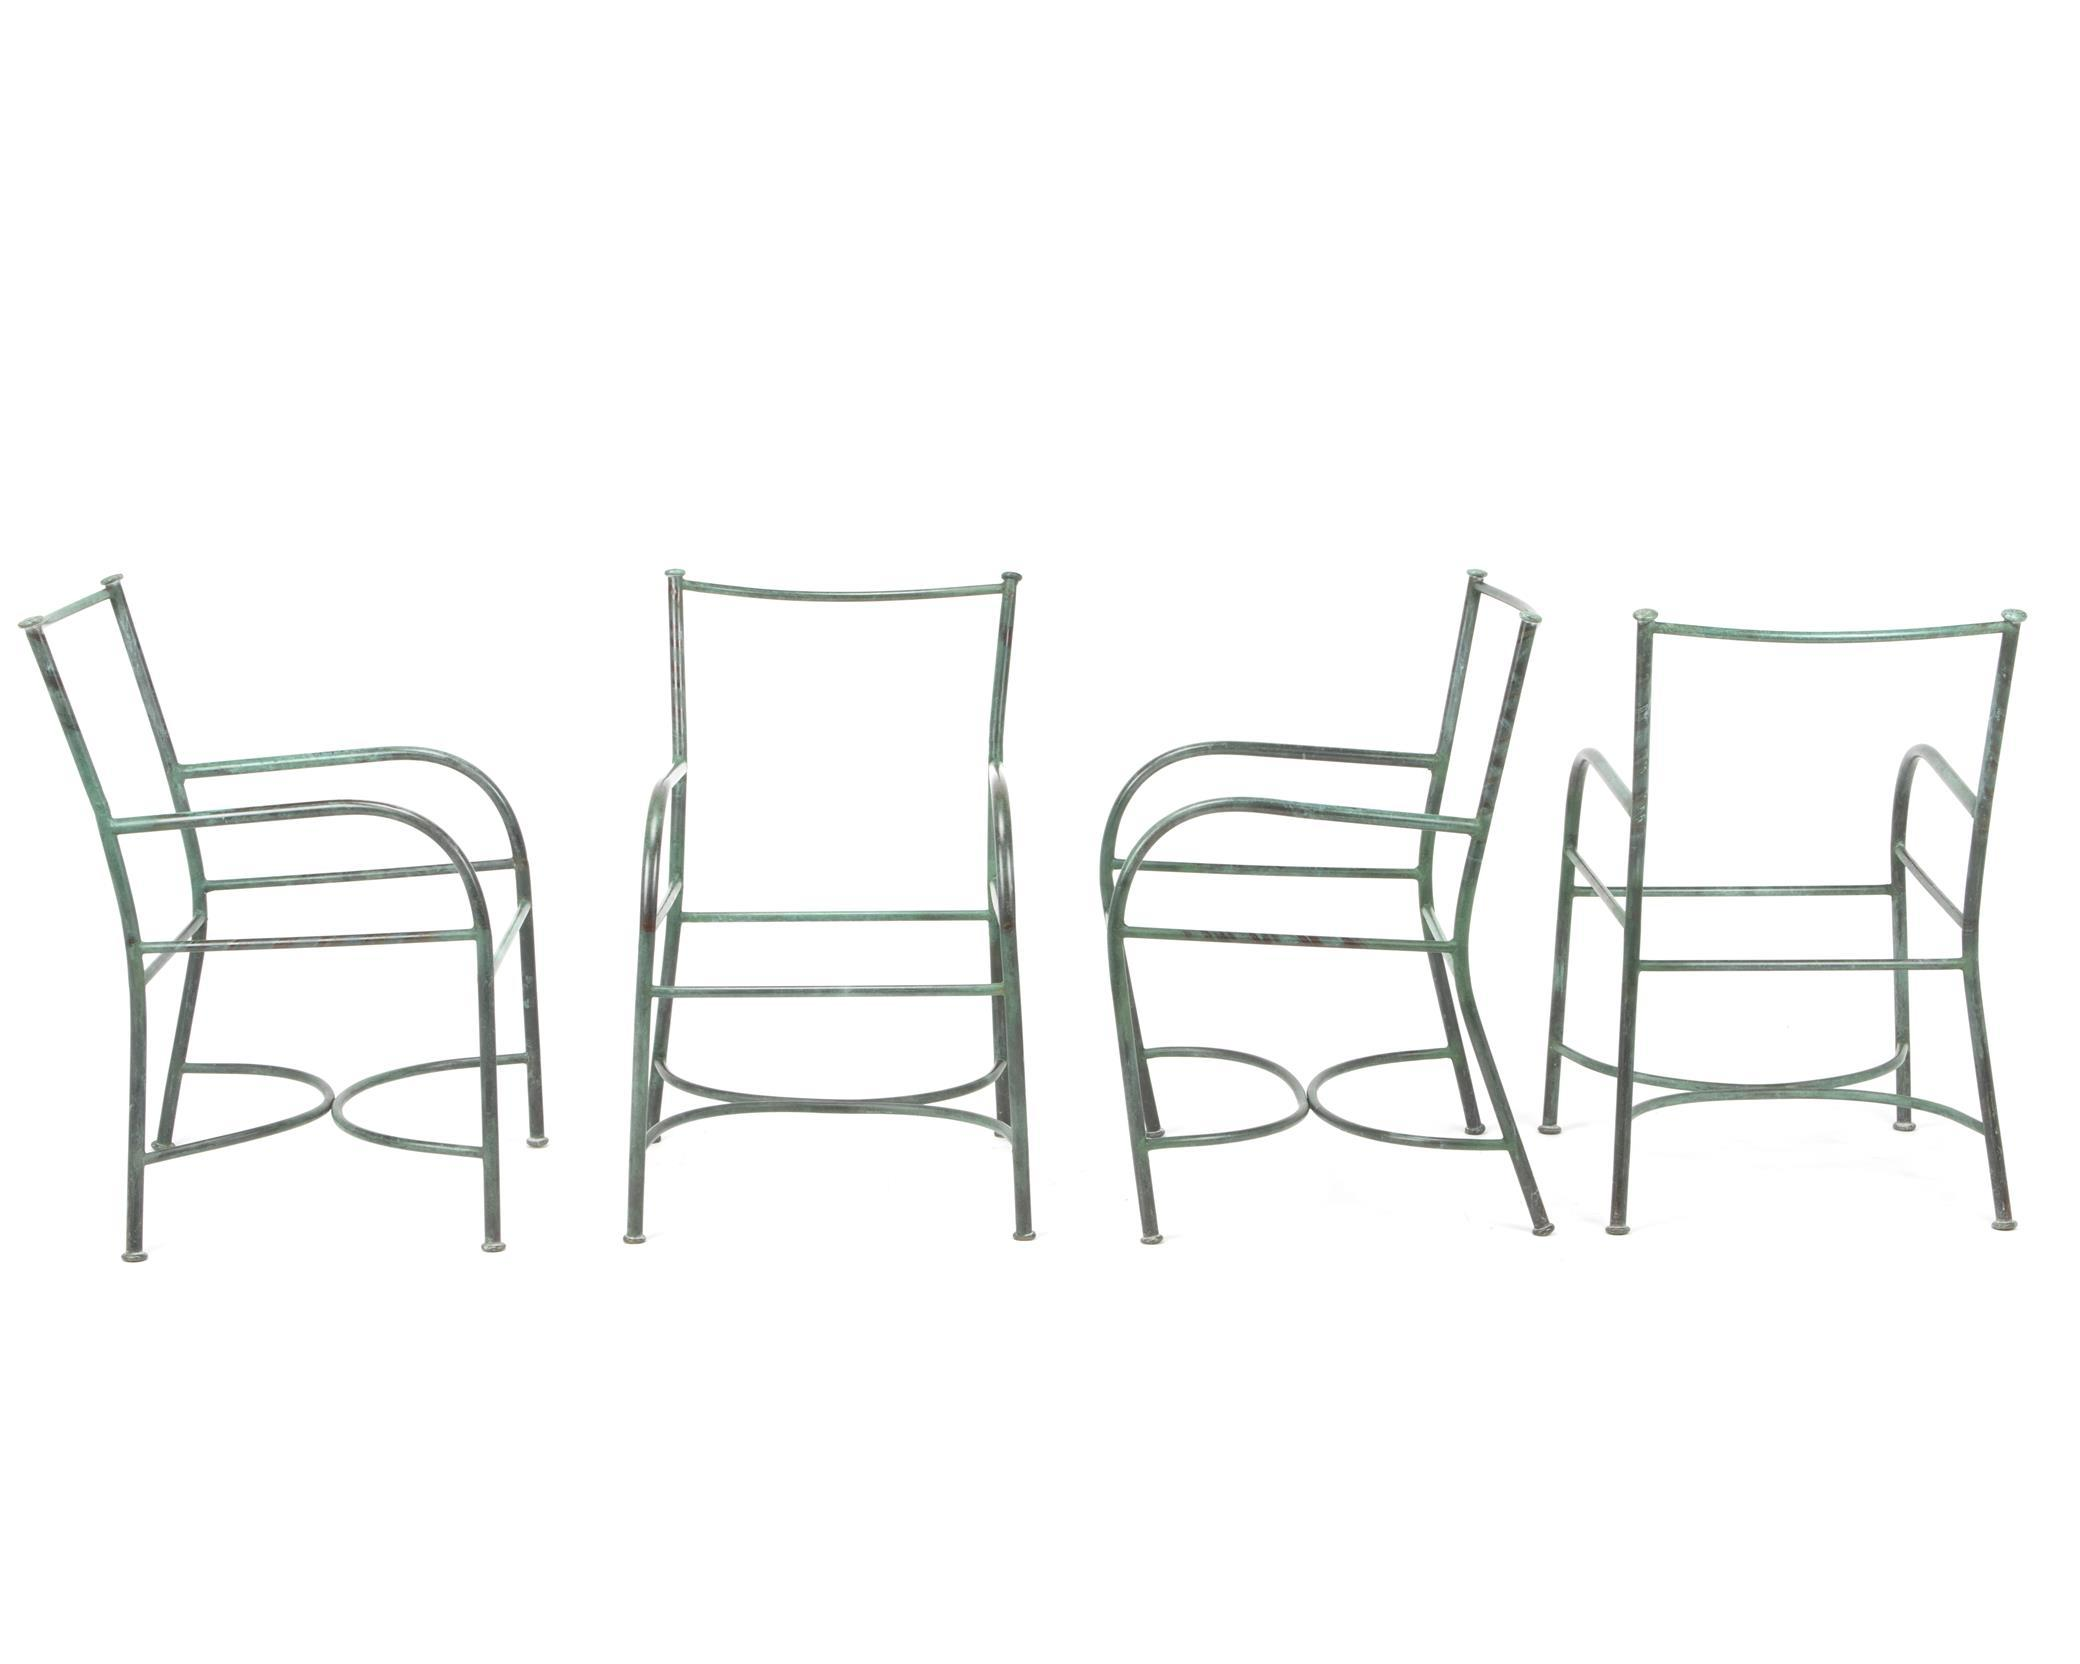 "Robert Lewis, (fl. 20th/21st Century, American), Four armchair frames, Copper, Each approximately: 33.5"" H x 19"" W x 24"" D"